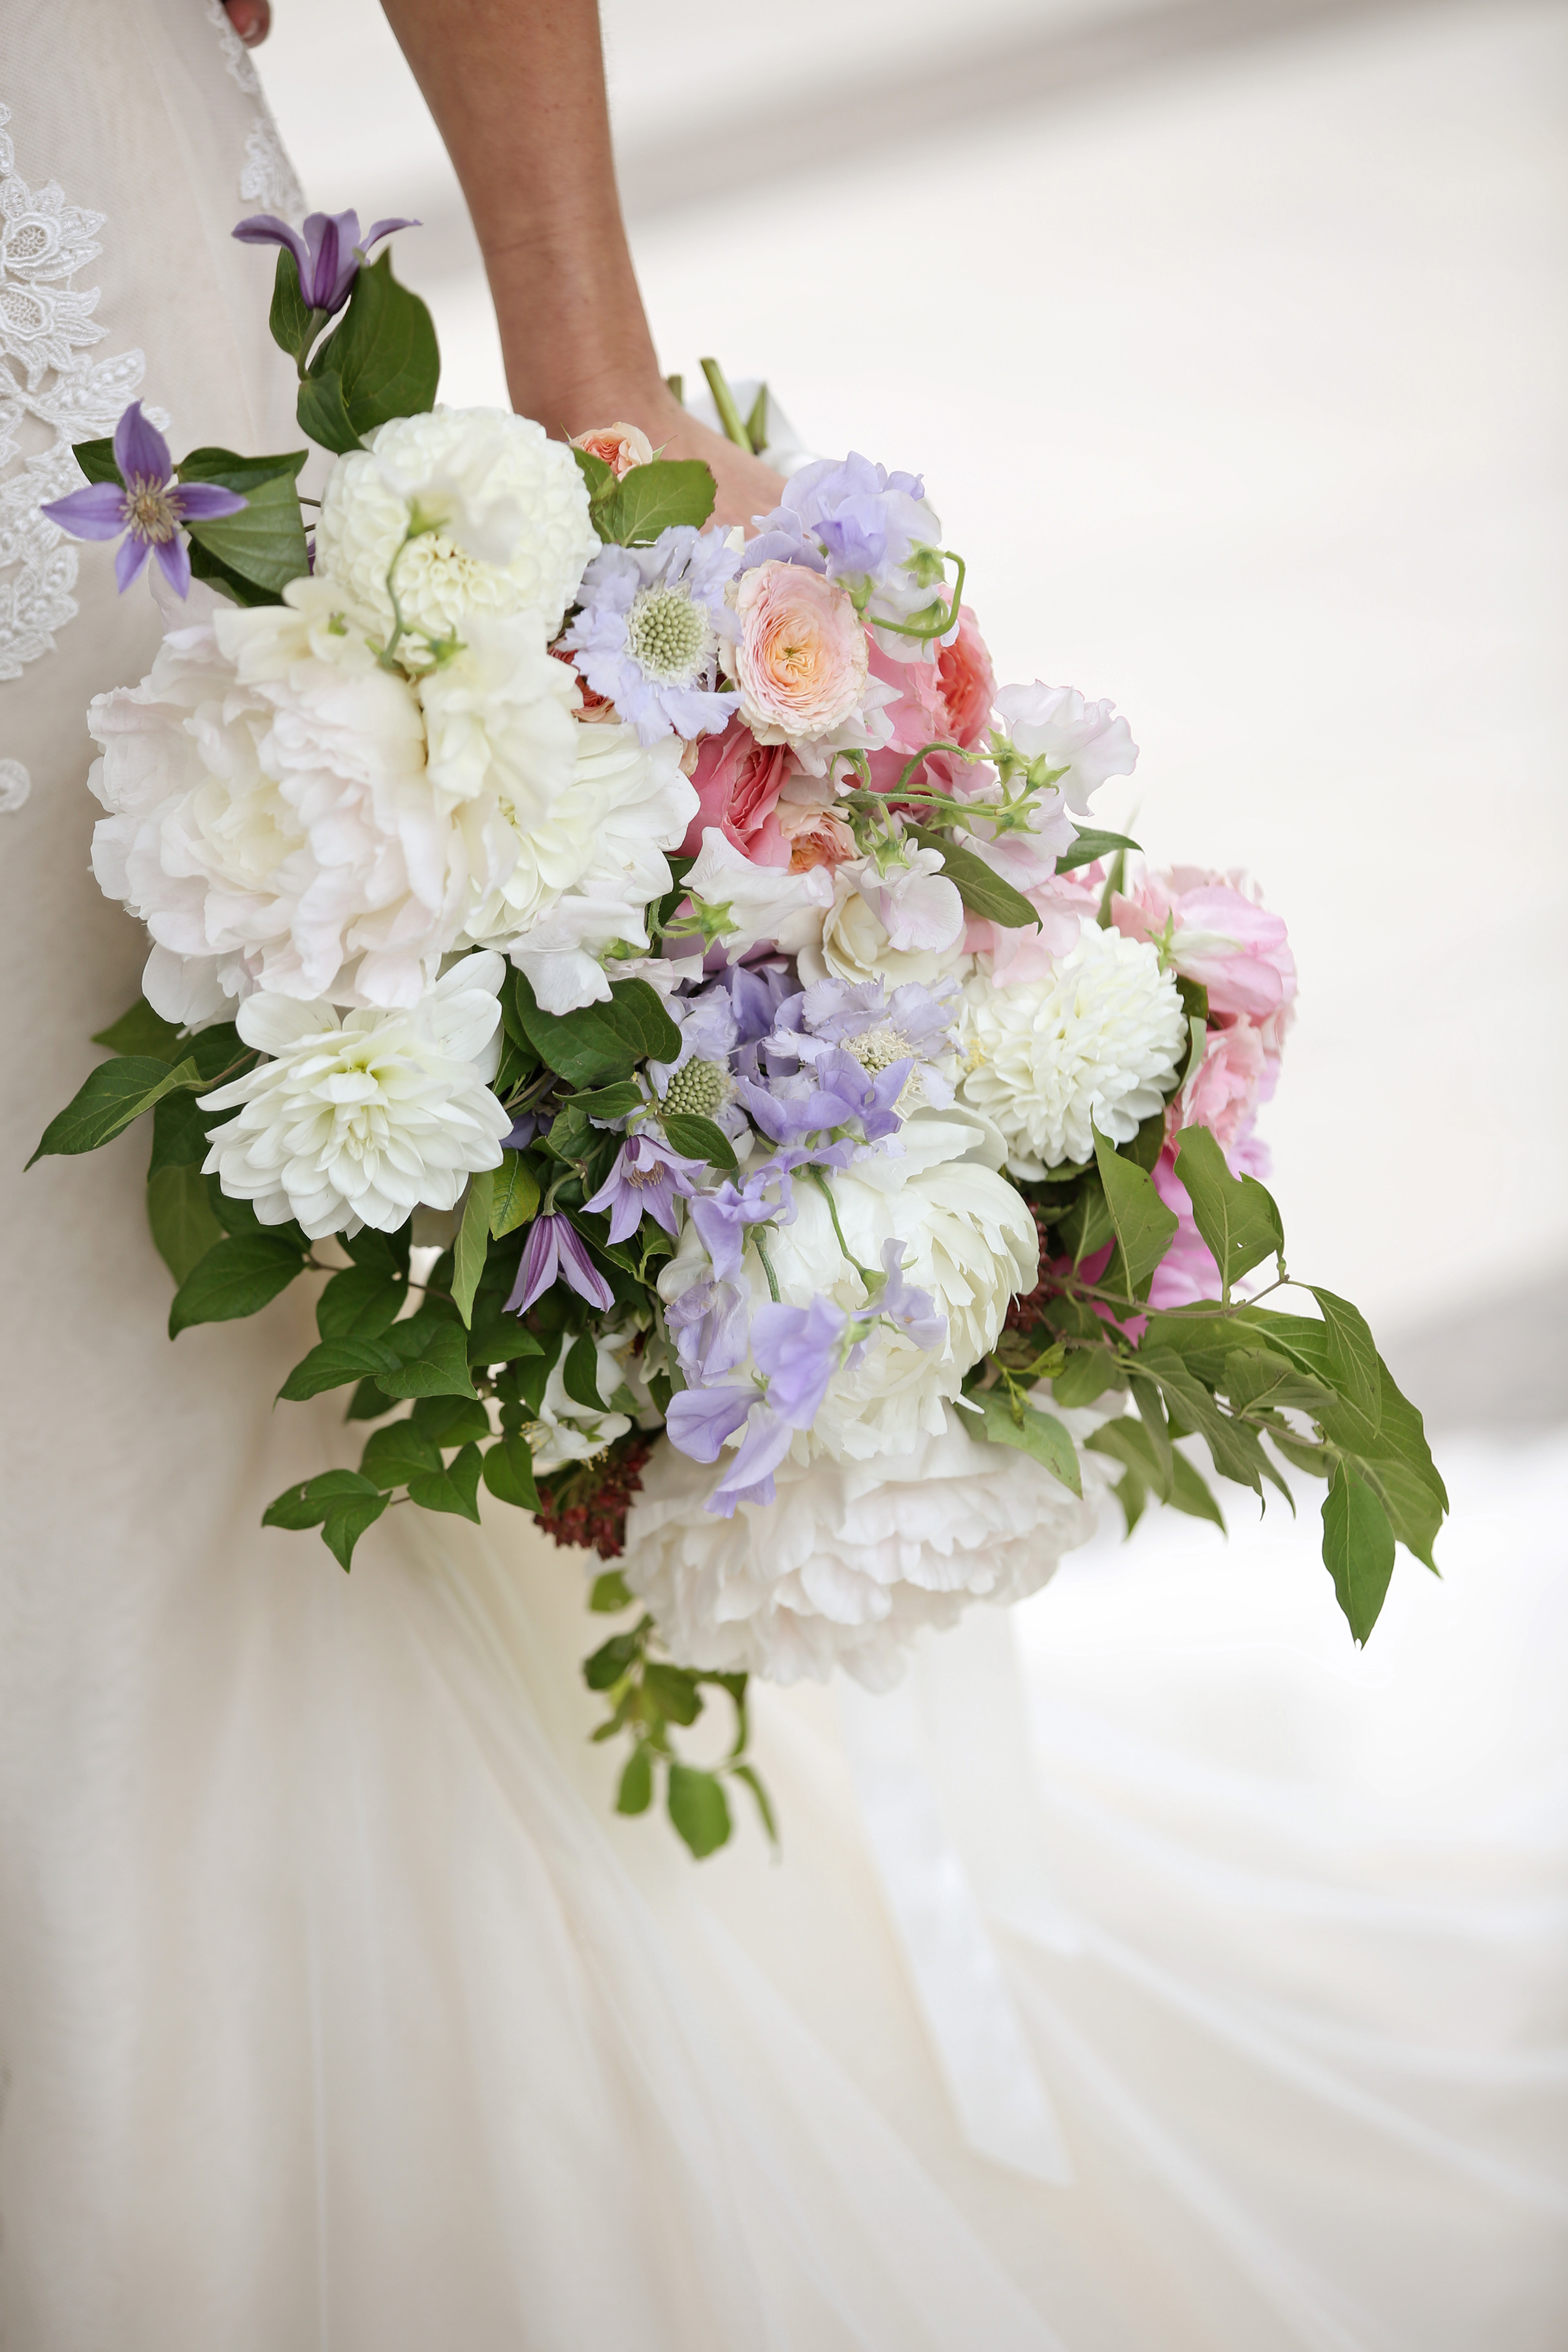 Detail of bridal bouquet - photo by Kenny Kim Photography